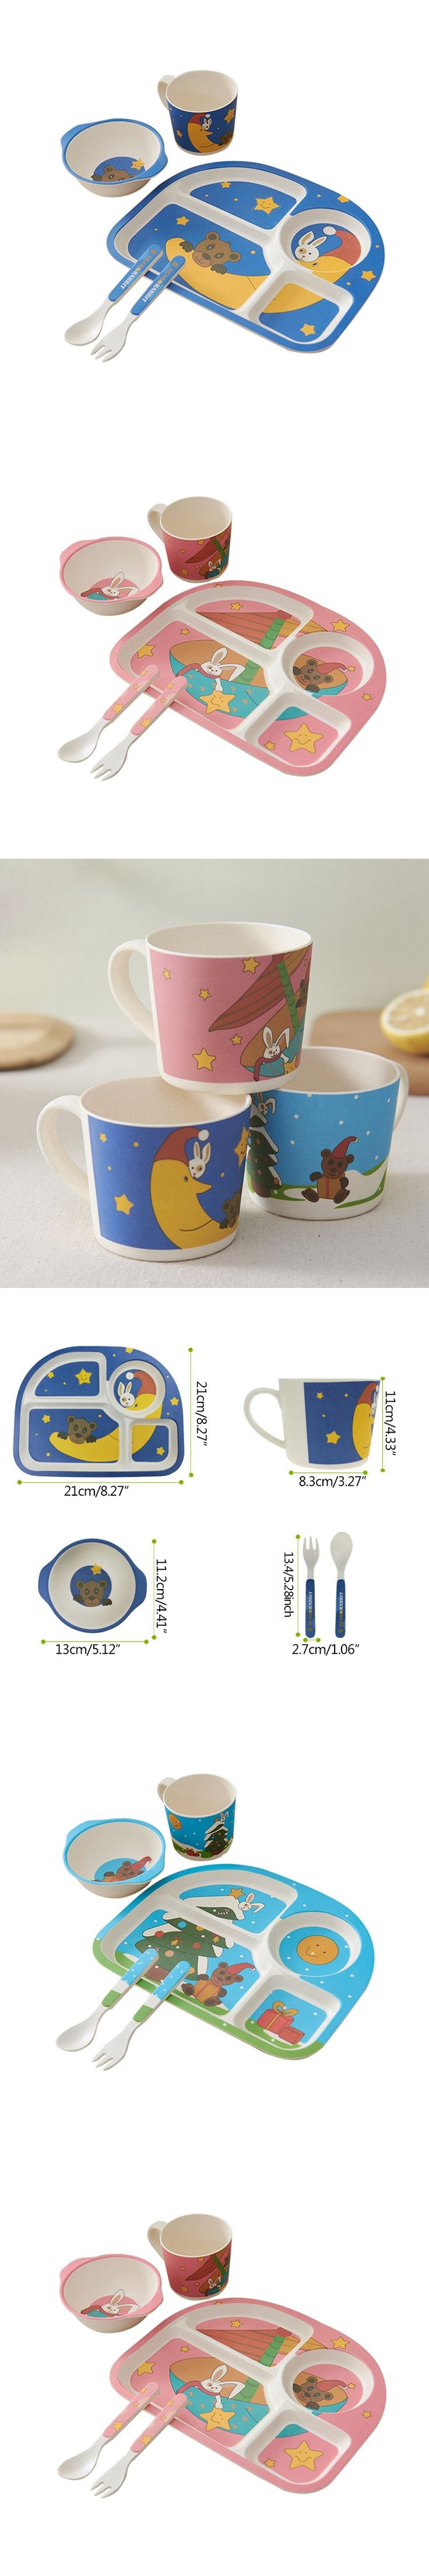 Best Selling Baby Feeding Dishes Kids Tableware Animal Printed Divided Plate Bowl Cup Cutlery Set Children Food Container